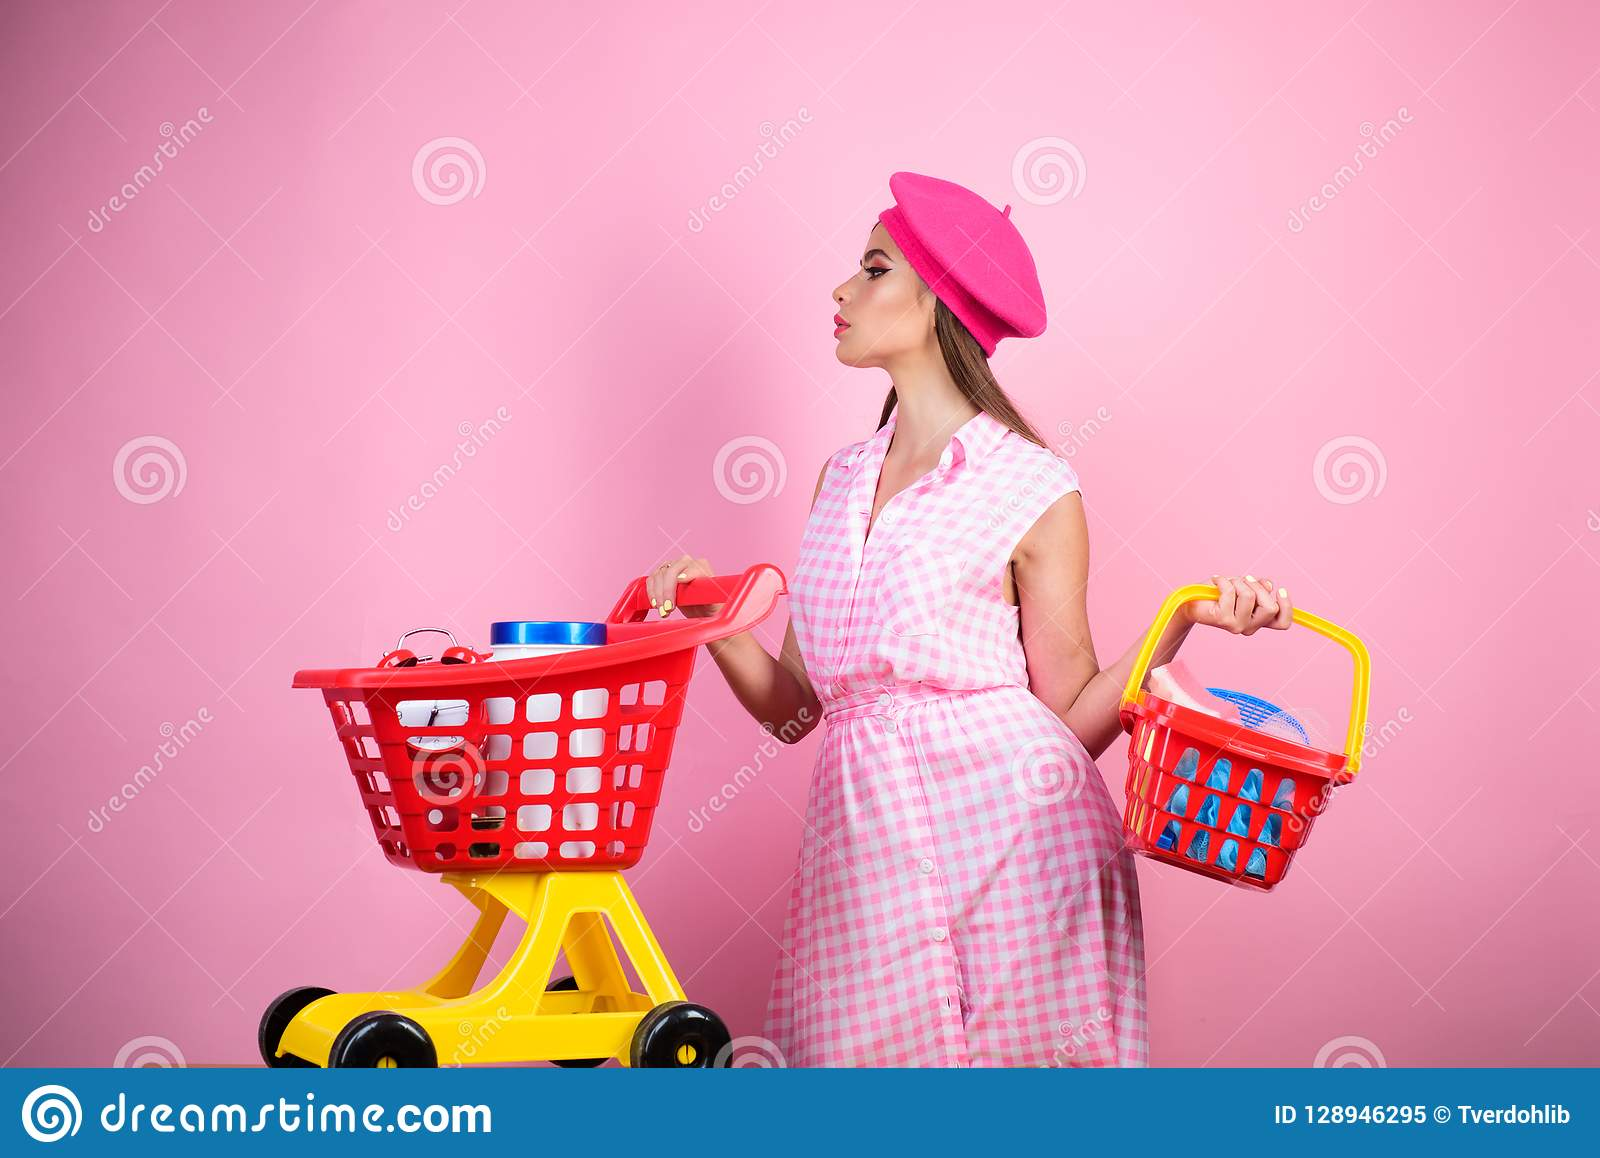 Happy stylish girl enjoying online shopping. savings on purchases. vintage housewife woman ready to pay in supermarket